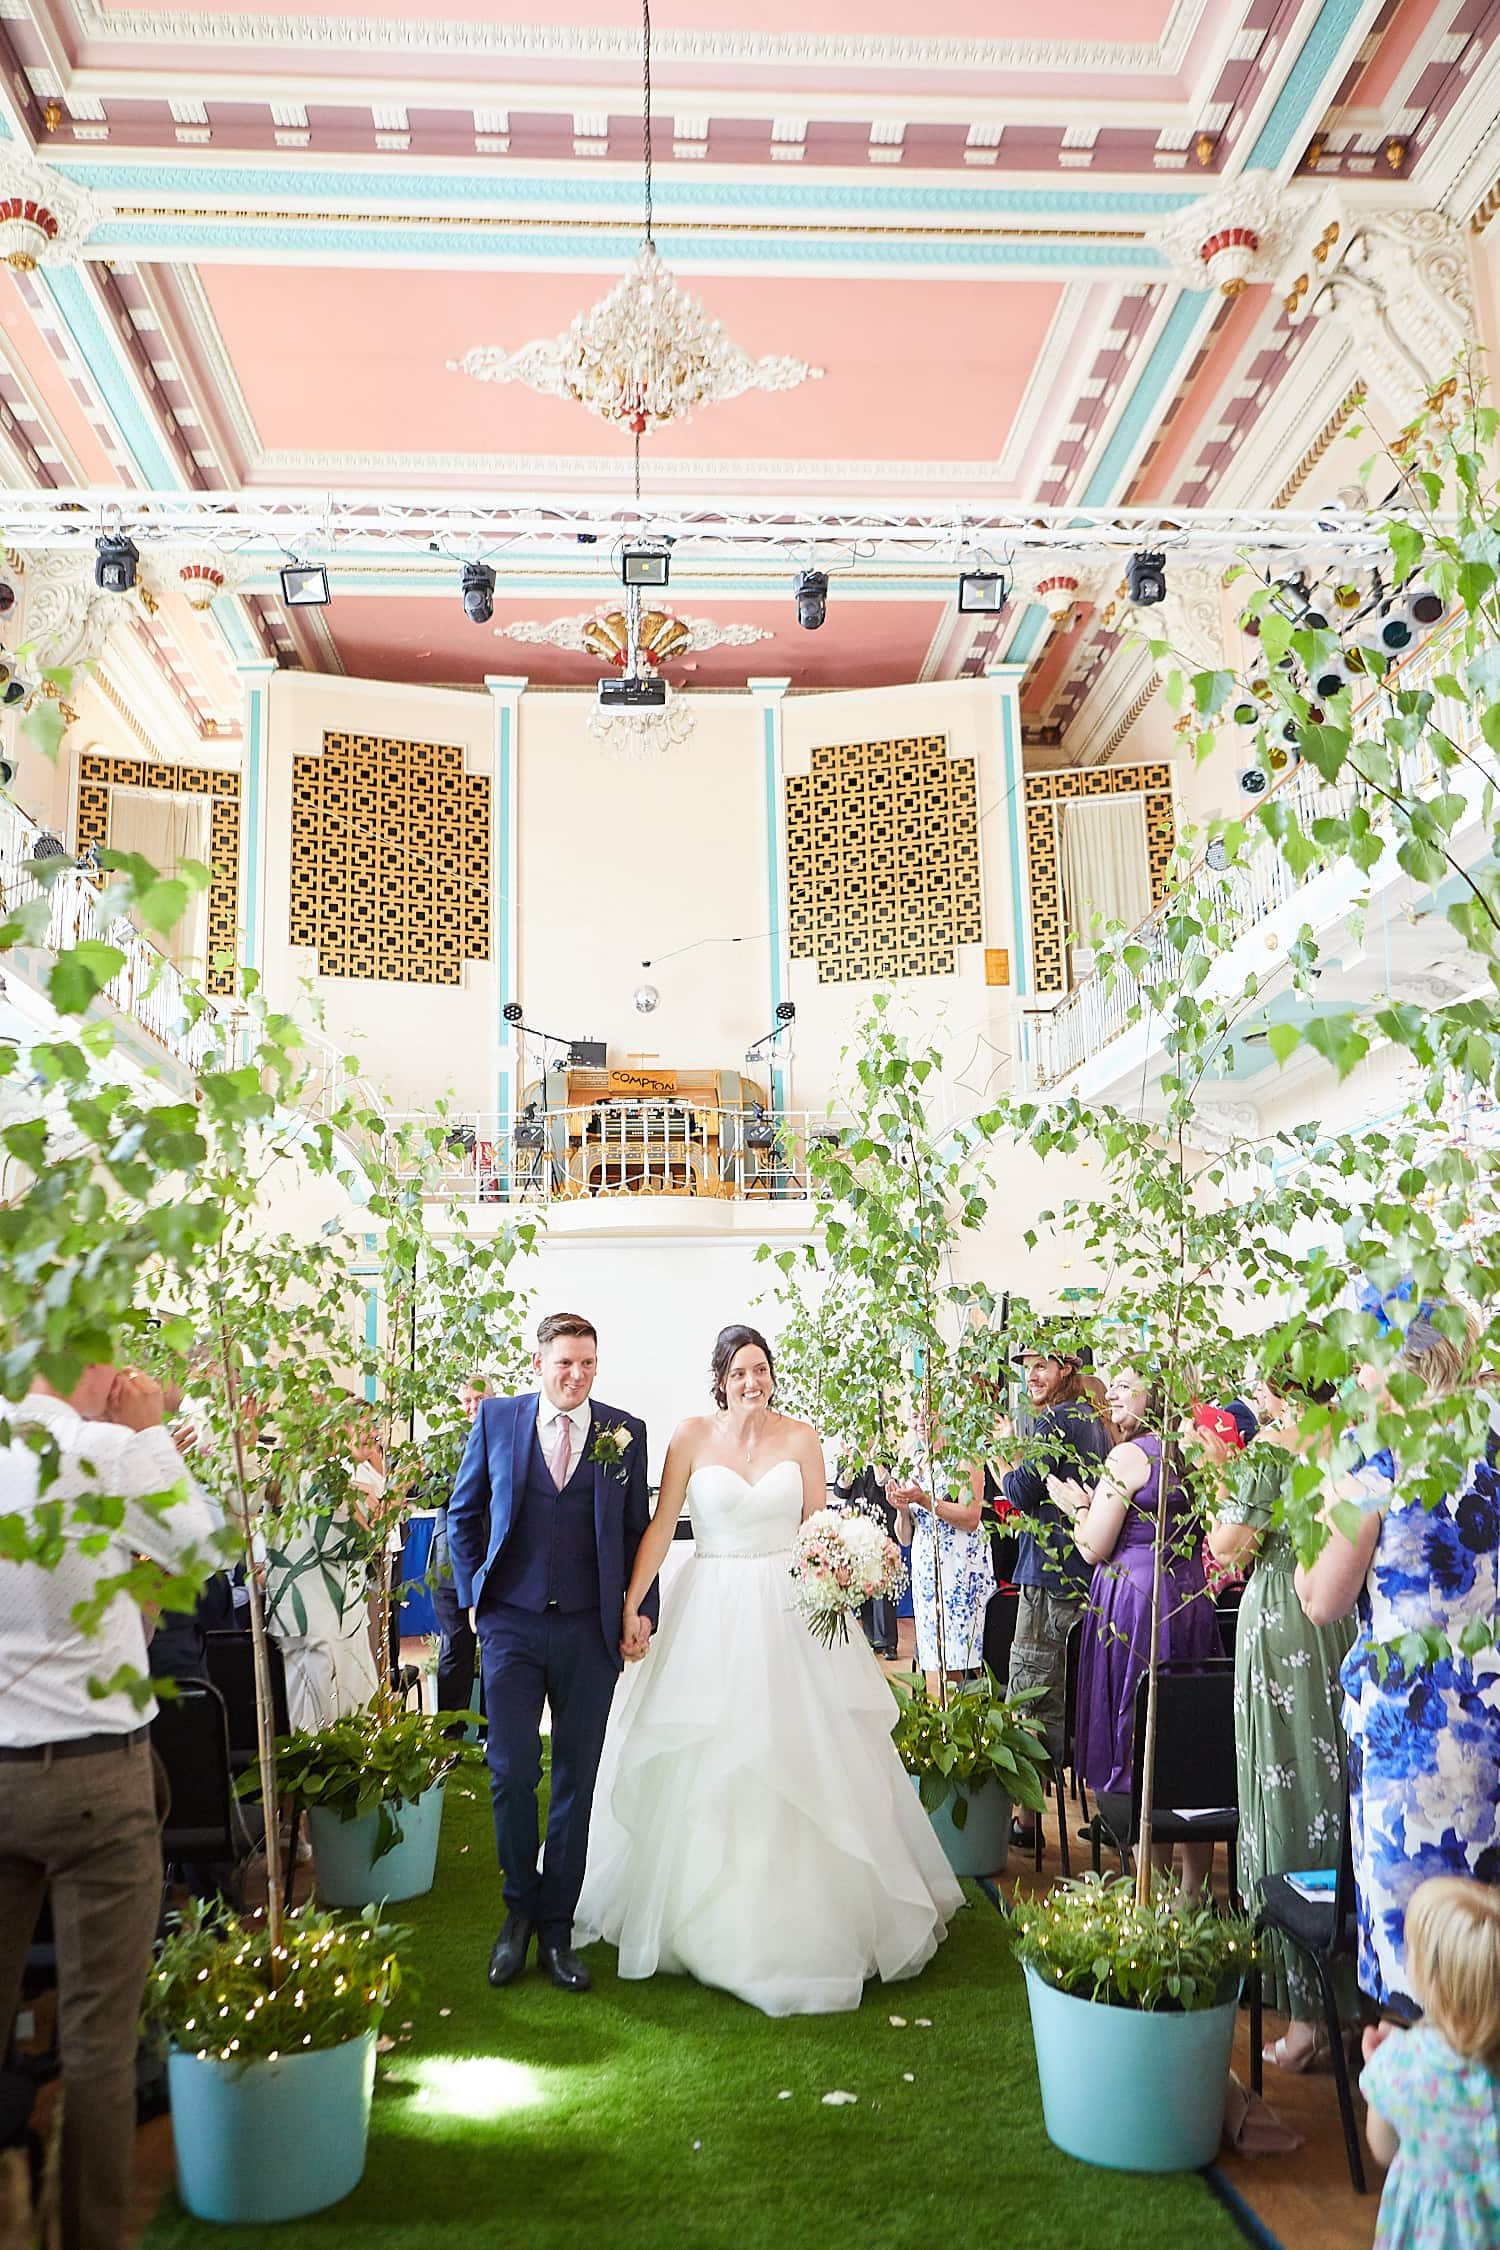 A Louth Town Hall wedding sees the bride and groom walk past family & friends